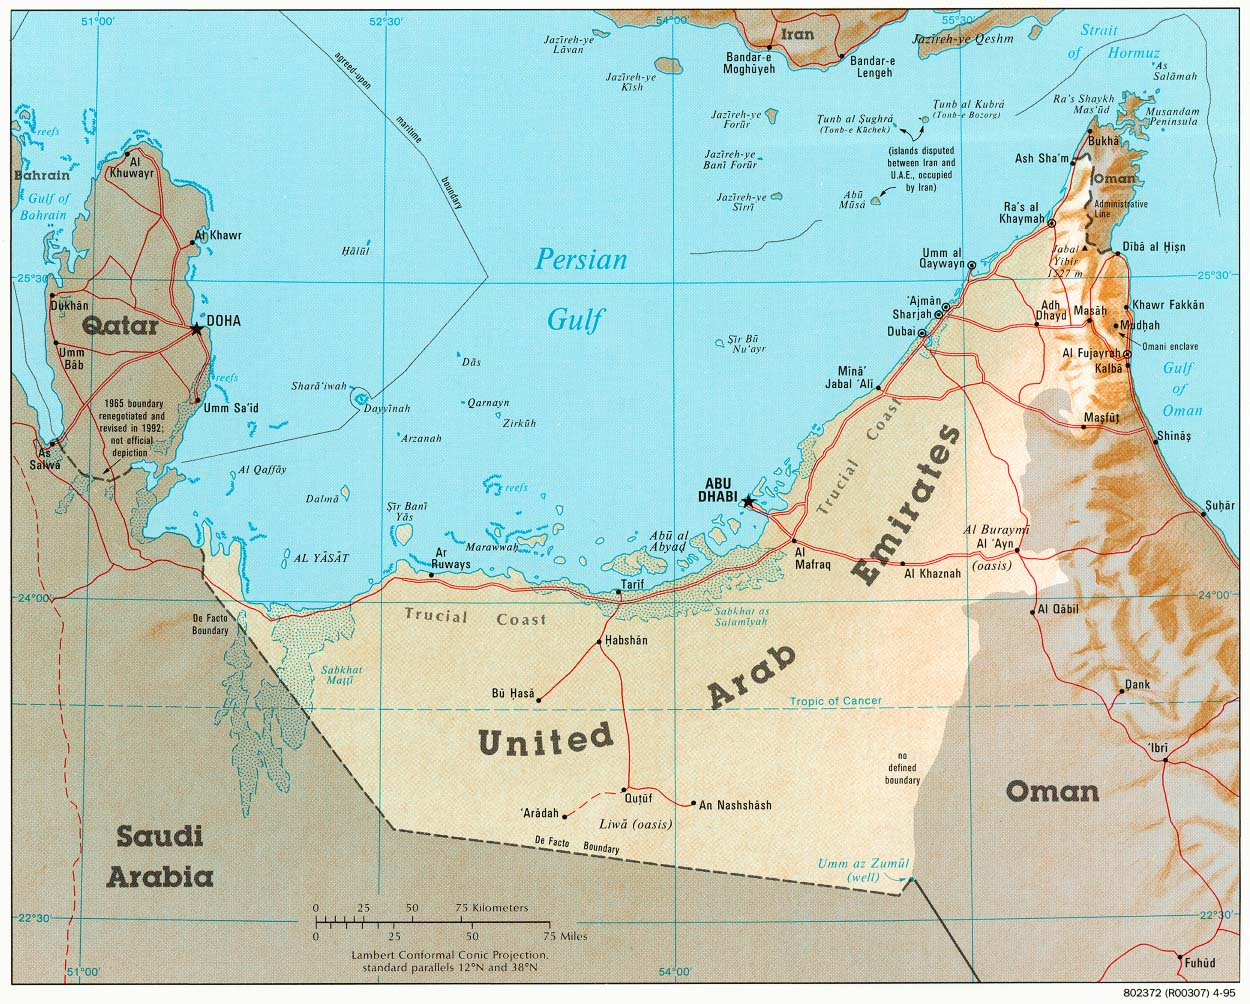 United Arab Emirates Shaded Relief Map